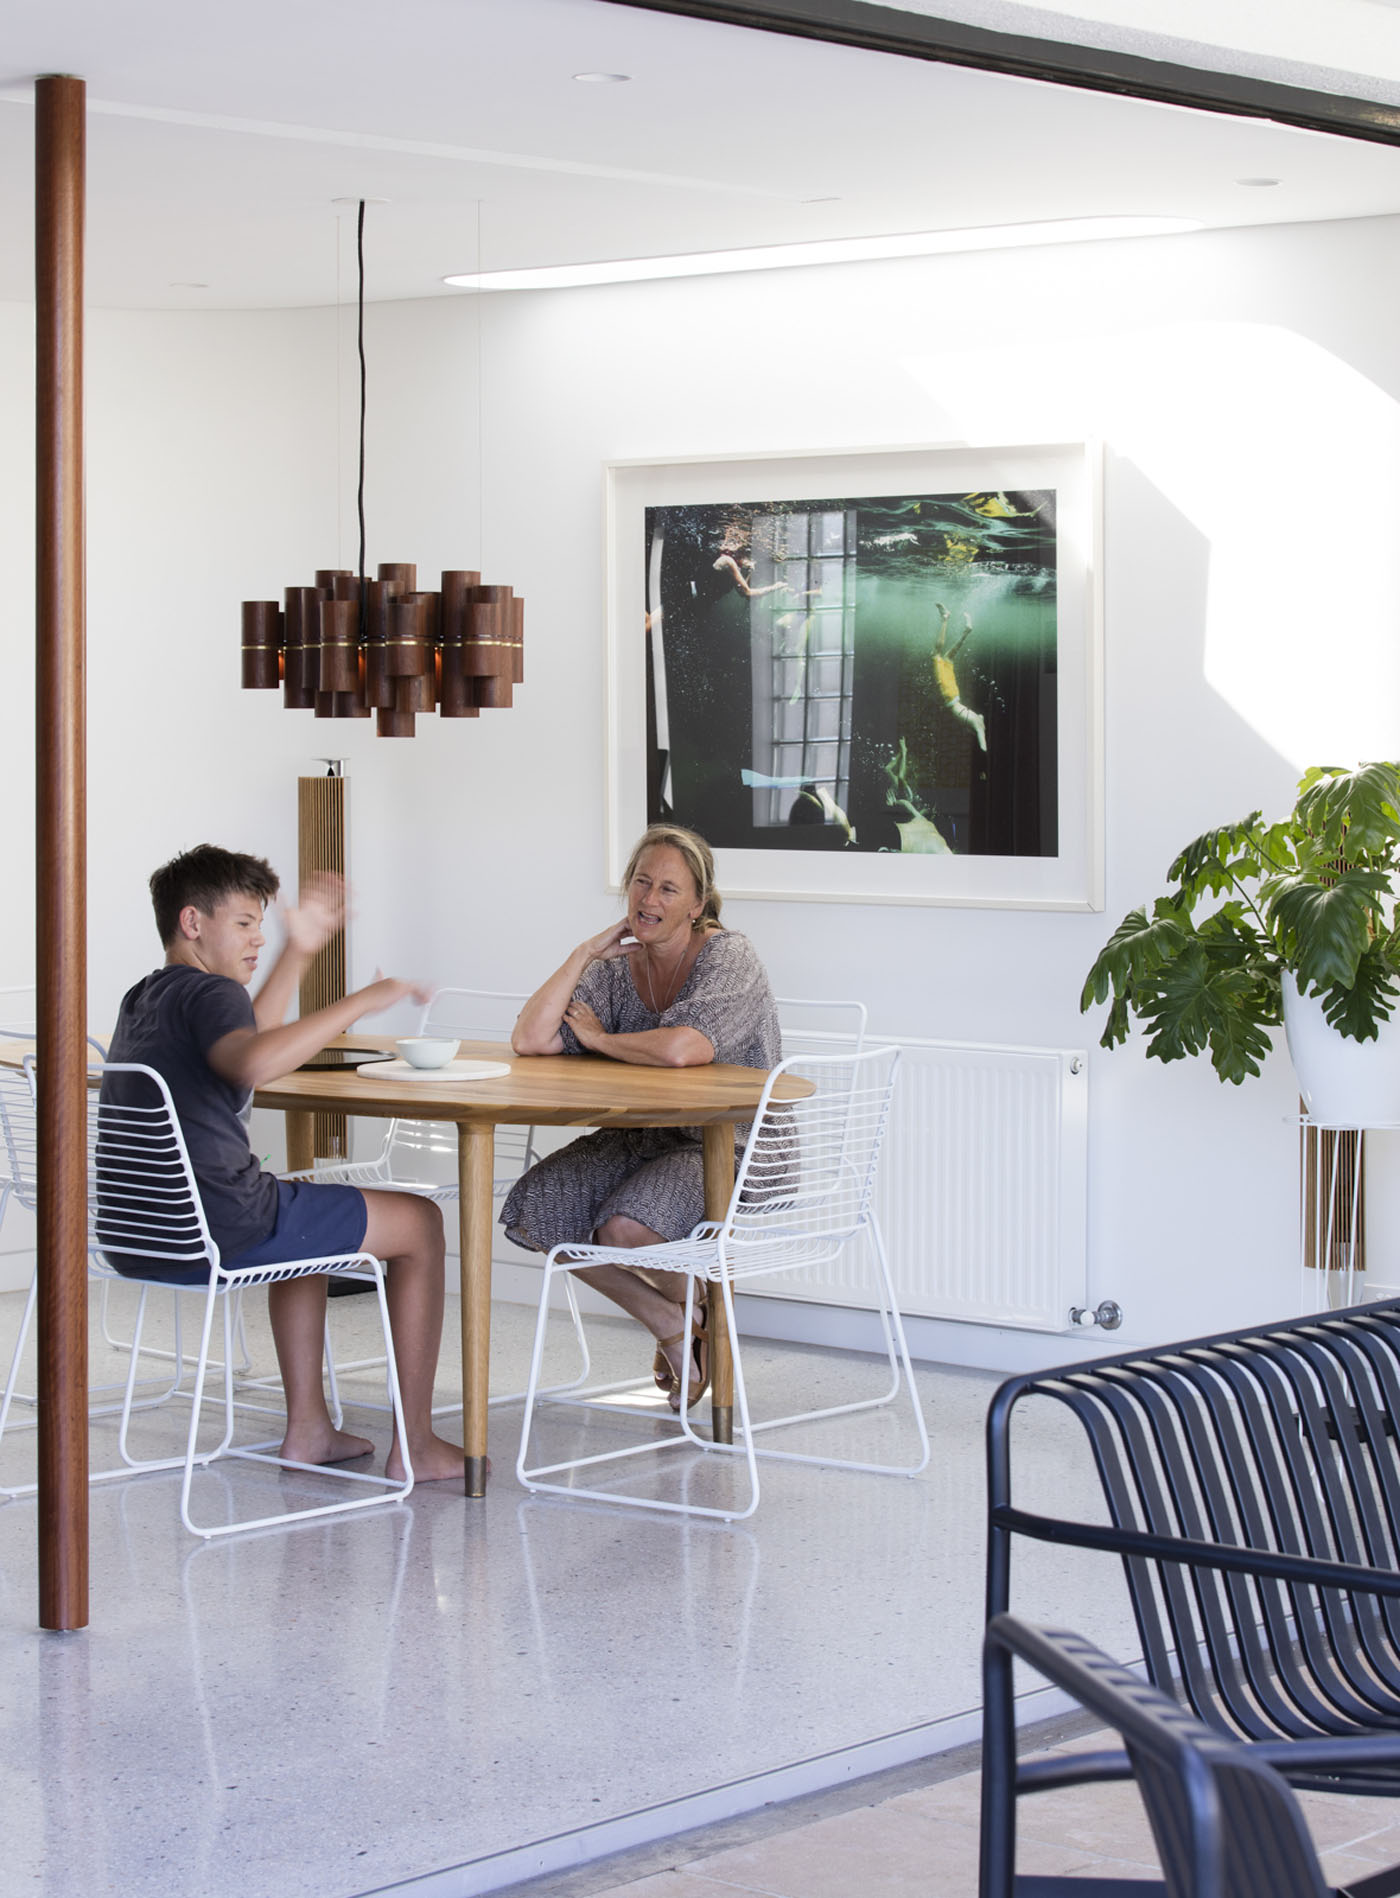 Dover Heights Pendants by award winning Sydney firm Sam Crawford Architects. View into open dining space with pendant above.